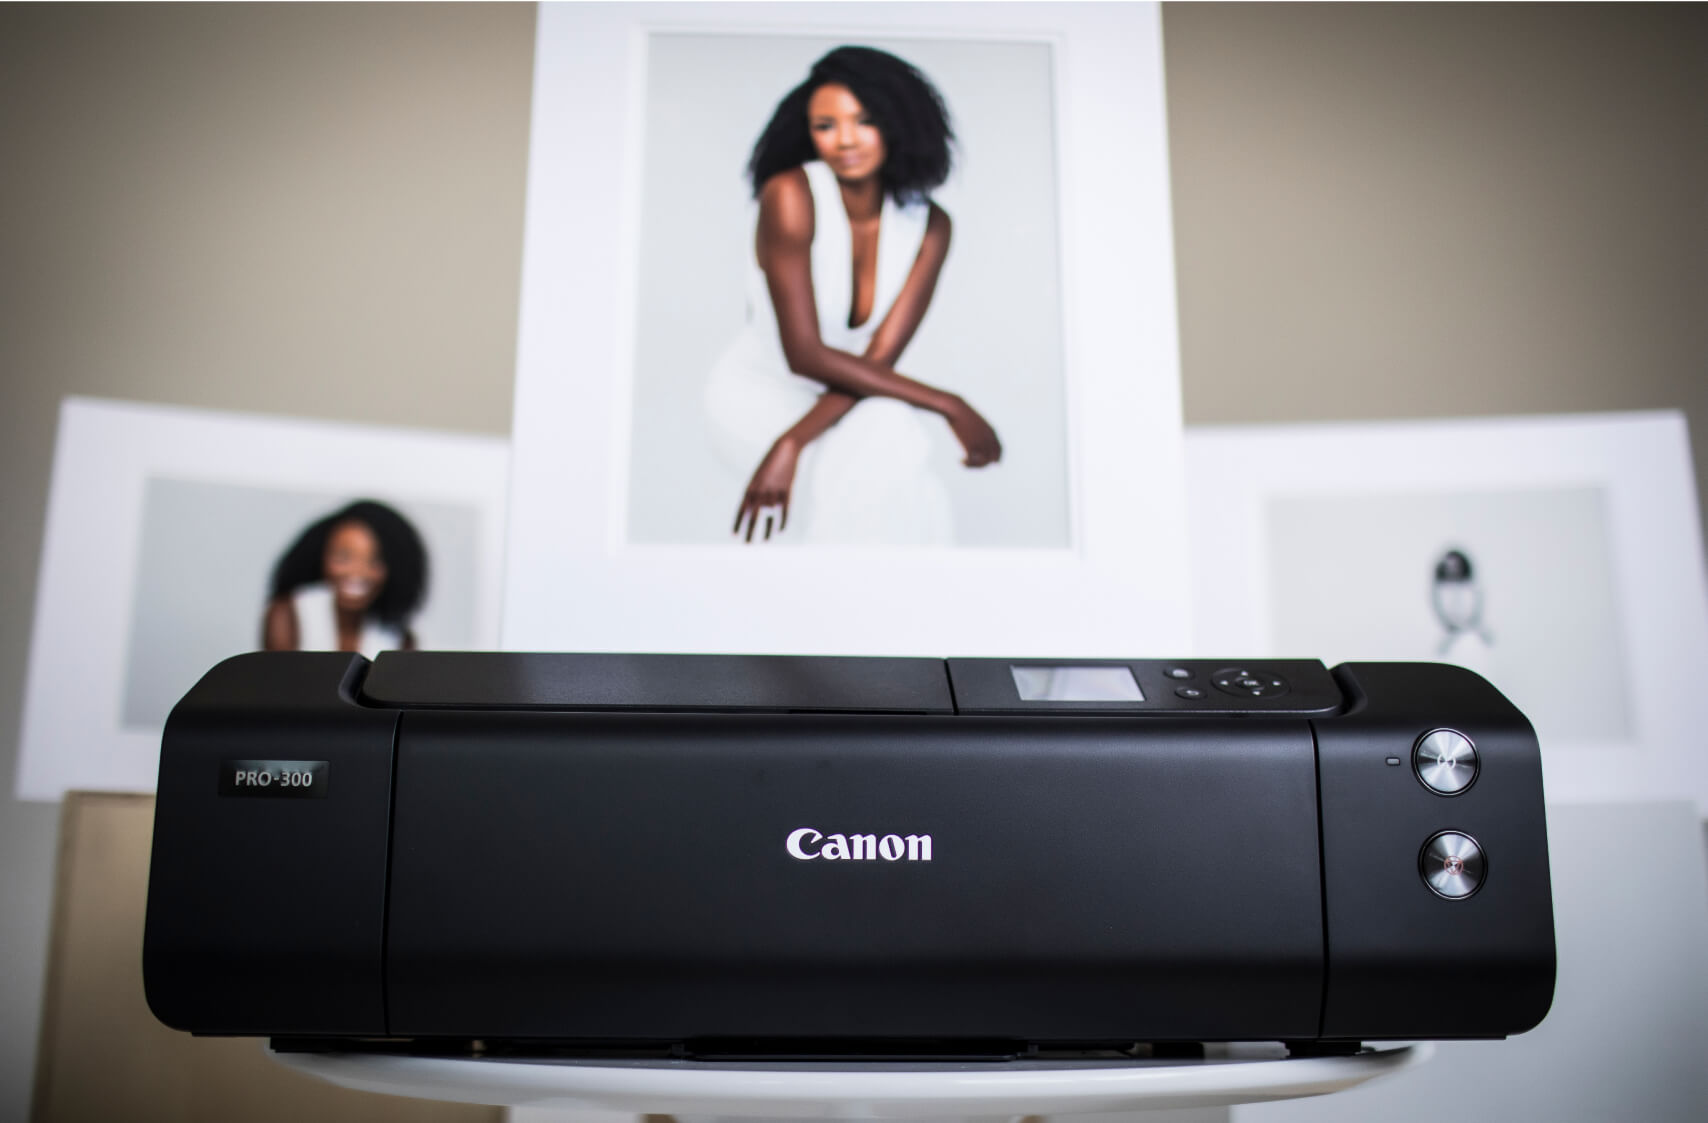 Canon imagePROGRAF PRO-300 with matted prints behind it